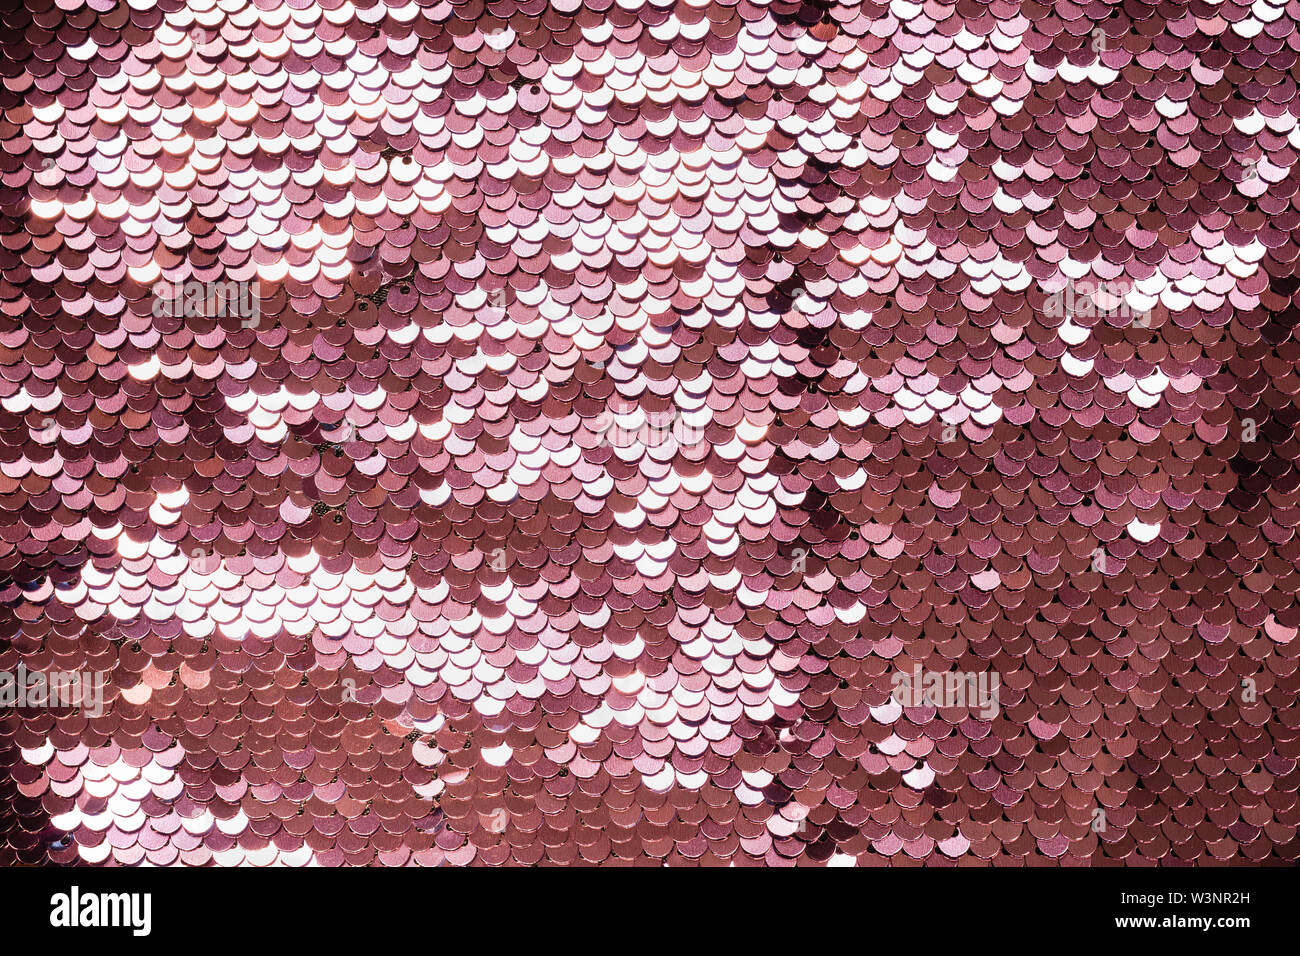 Luxury abstract background with coral iridescent sequins on fabric. - Stock Image